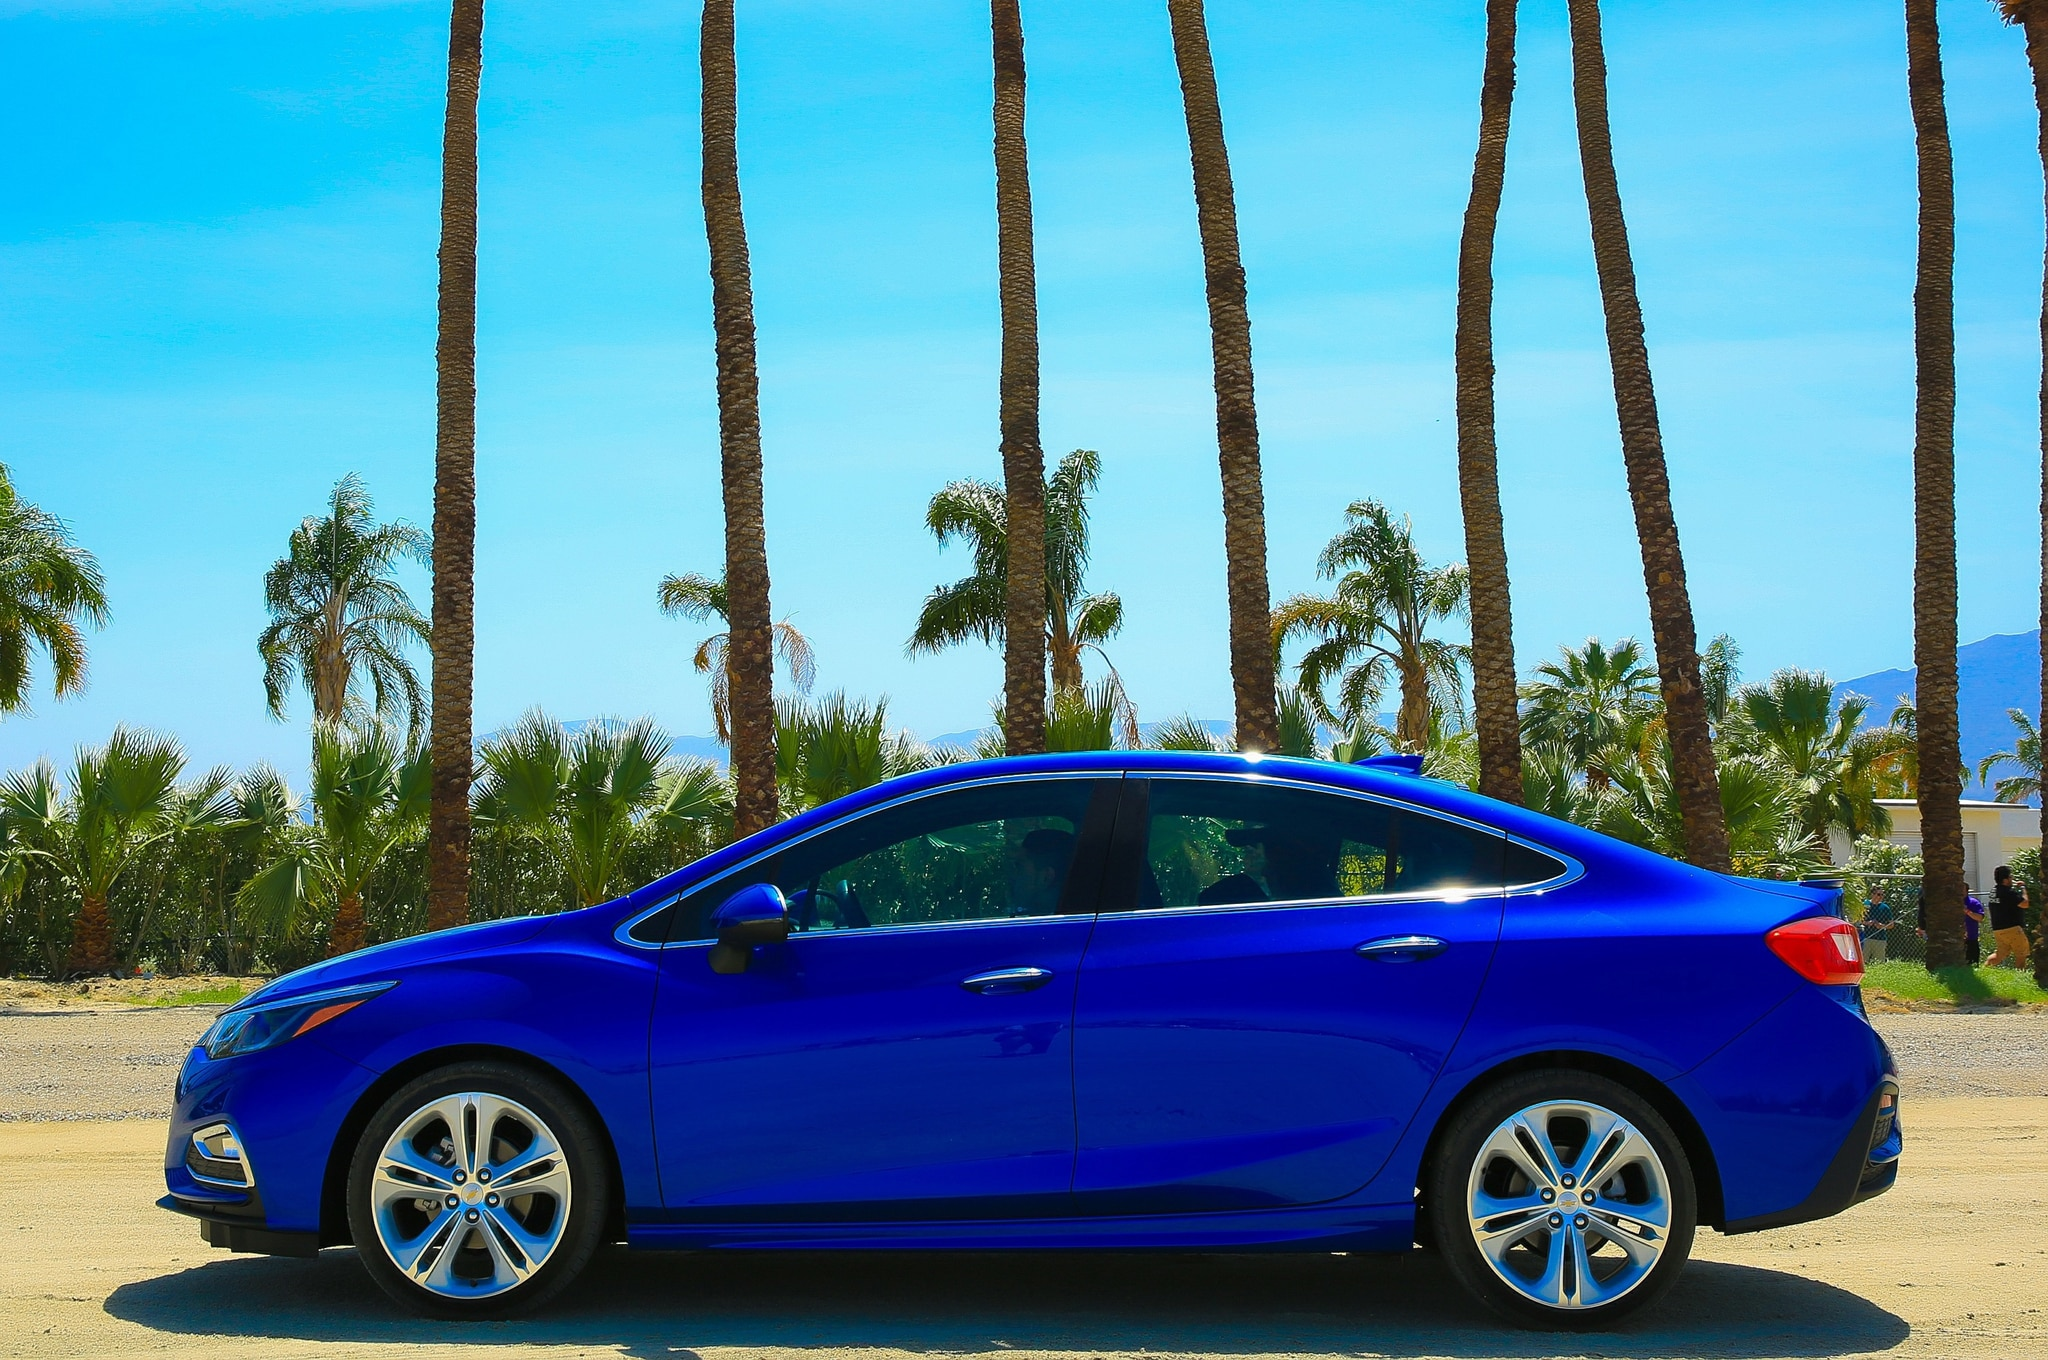 The New Cruze